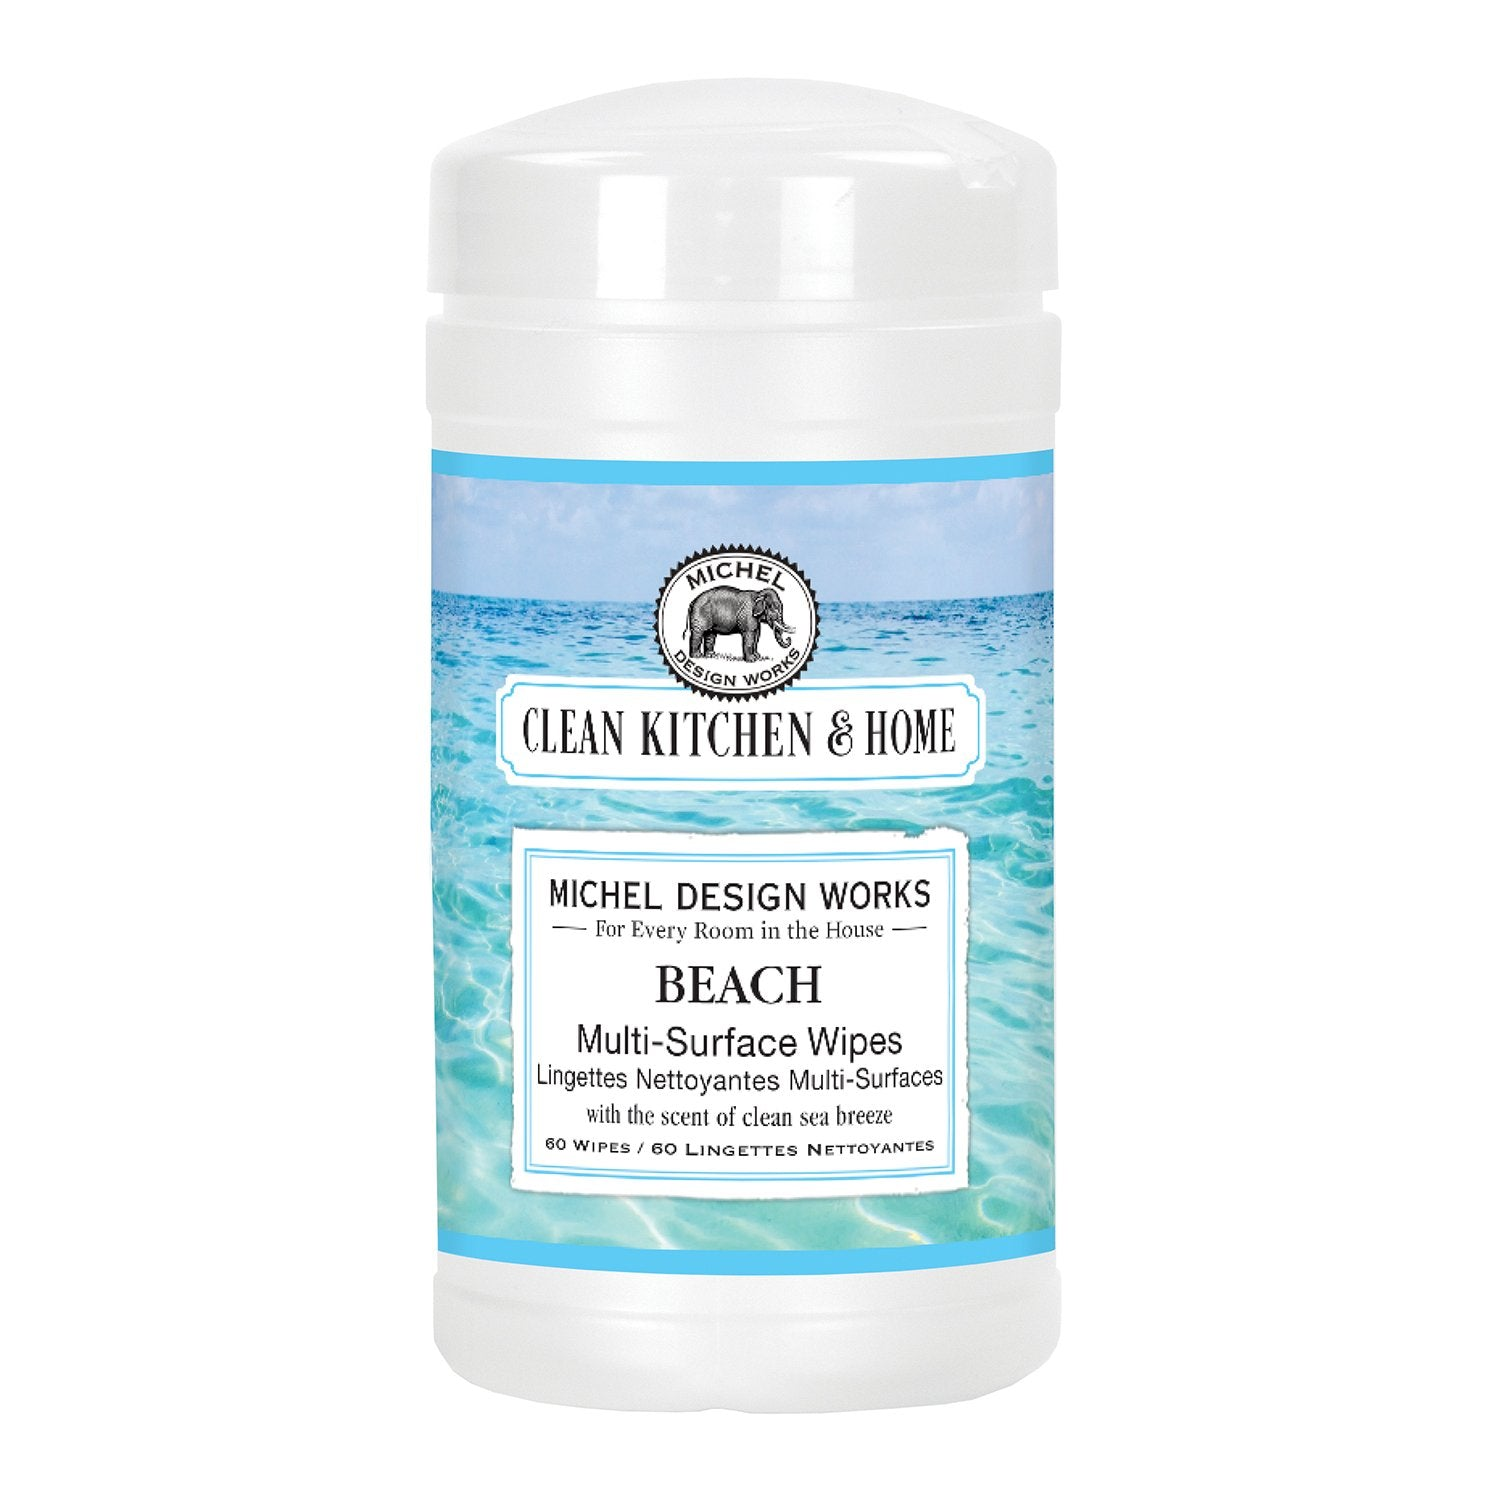 Beach Multi-Surface Wipes